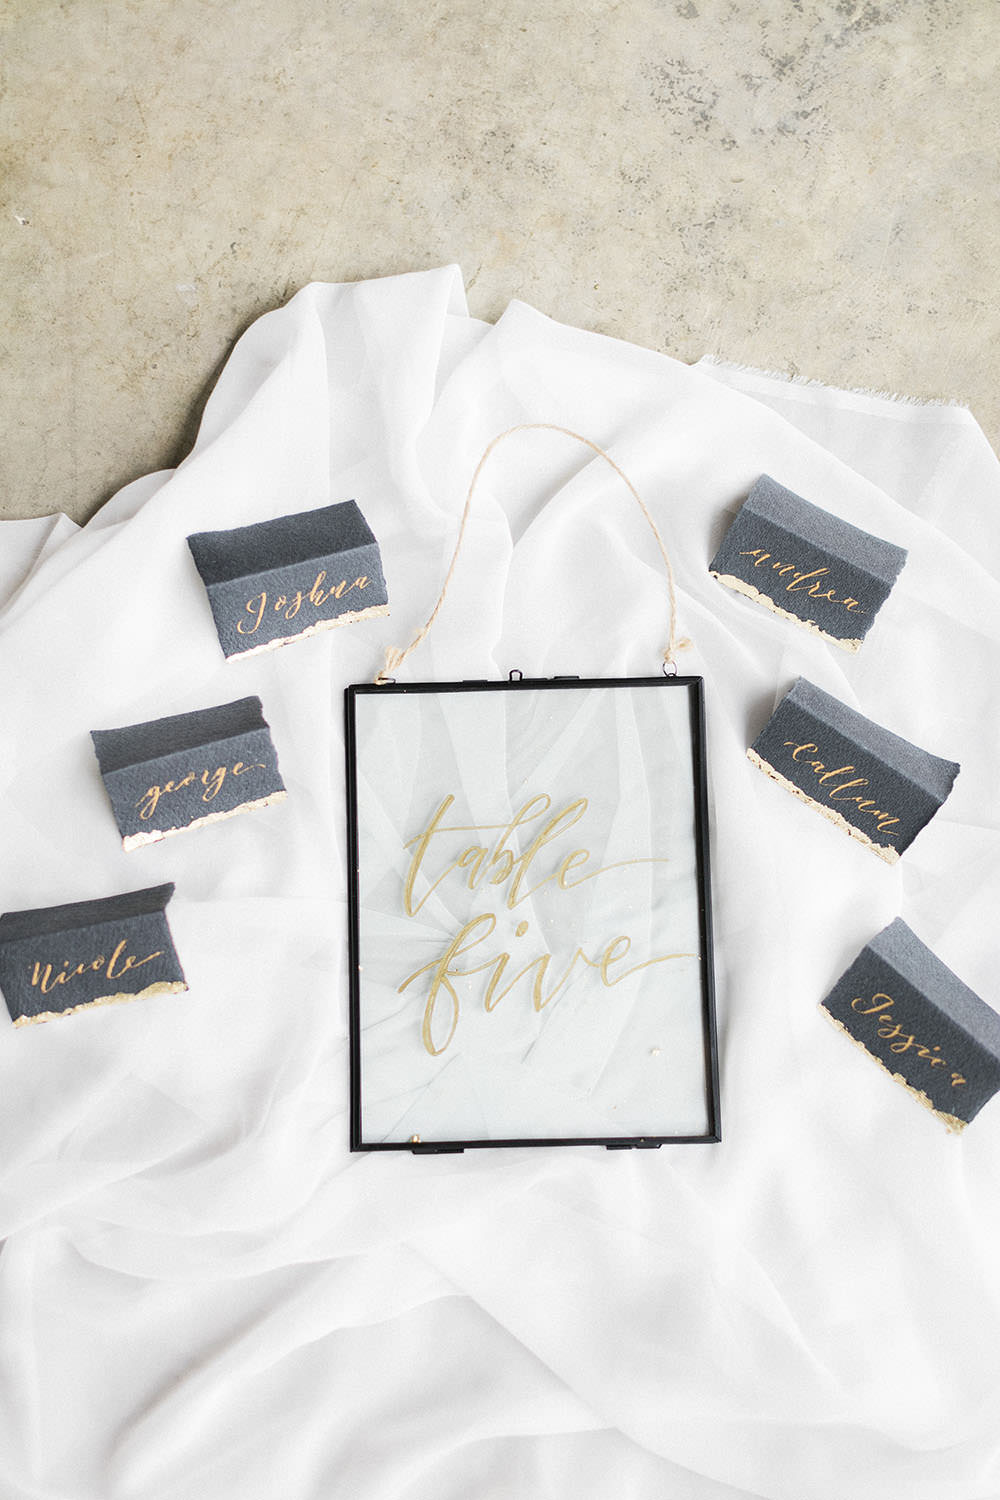 Black Calligraphy Metallic Place Name Card Stationery Glass Acrylic Perspex Table Number Sign Burgundy Gold Wedding Ideas Sarah Porter Photography